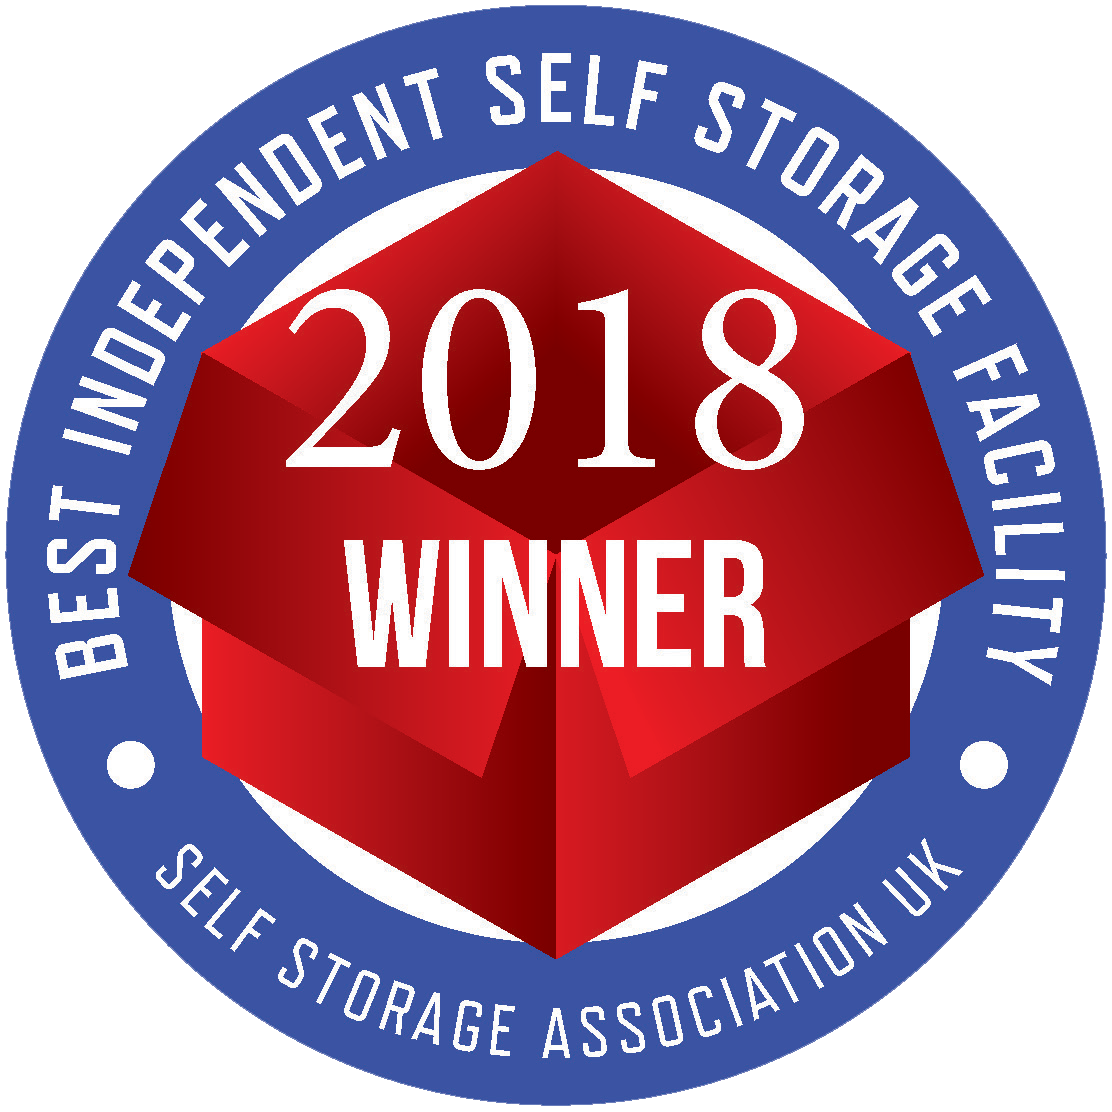 Best independant self storage award 2018